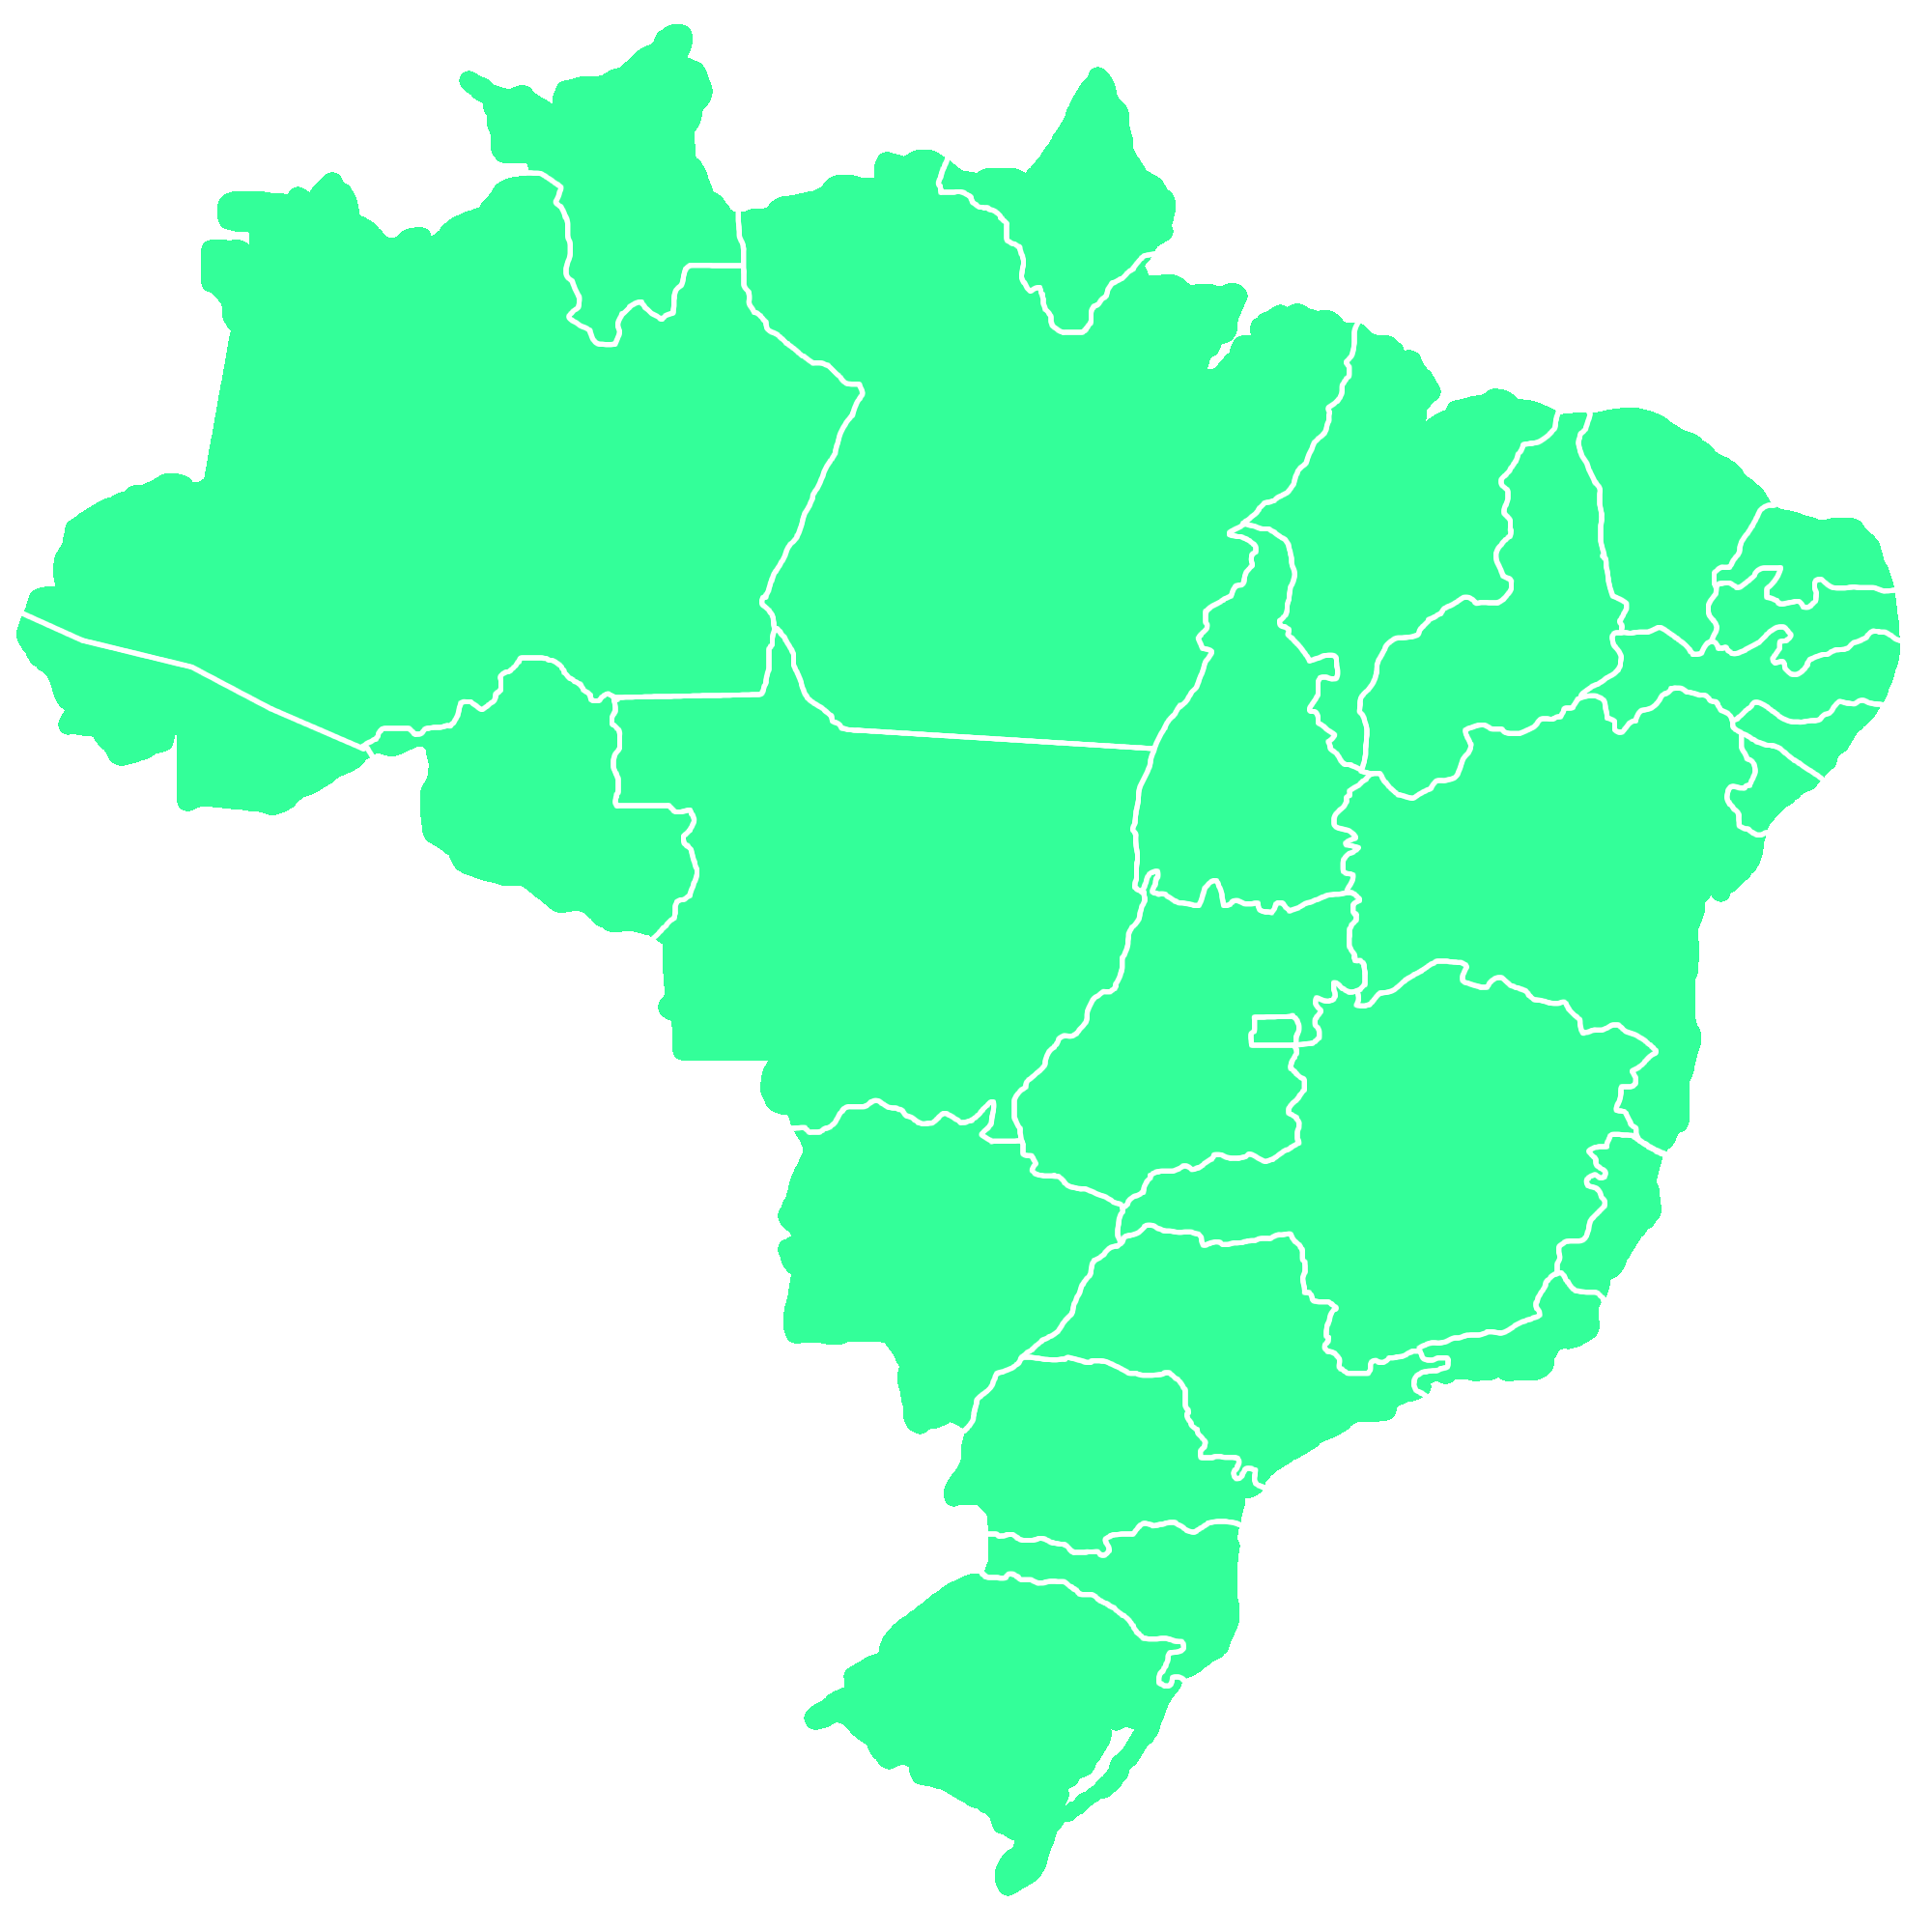 FileMap Of Brazil Statespng Wikimedia Commons - Brazil states map